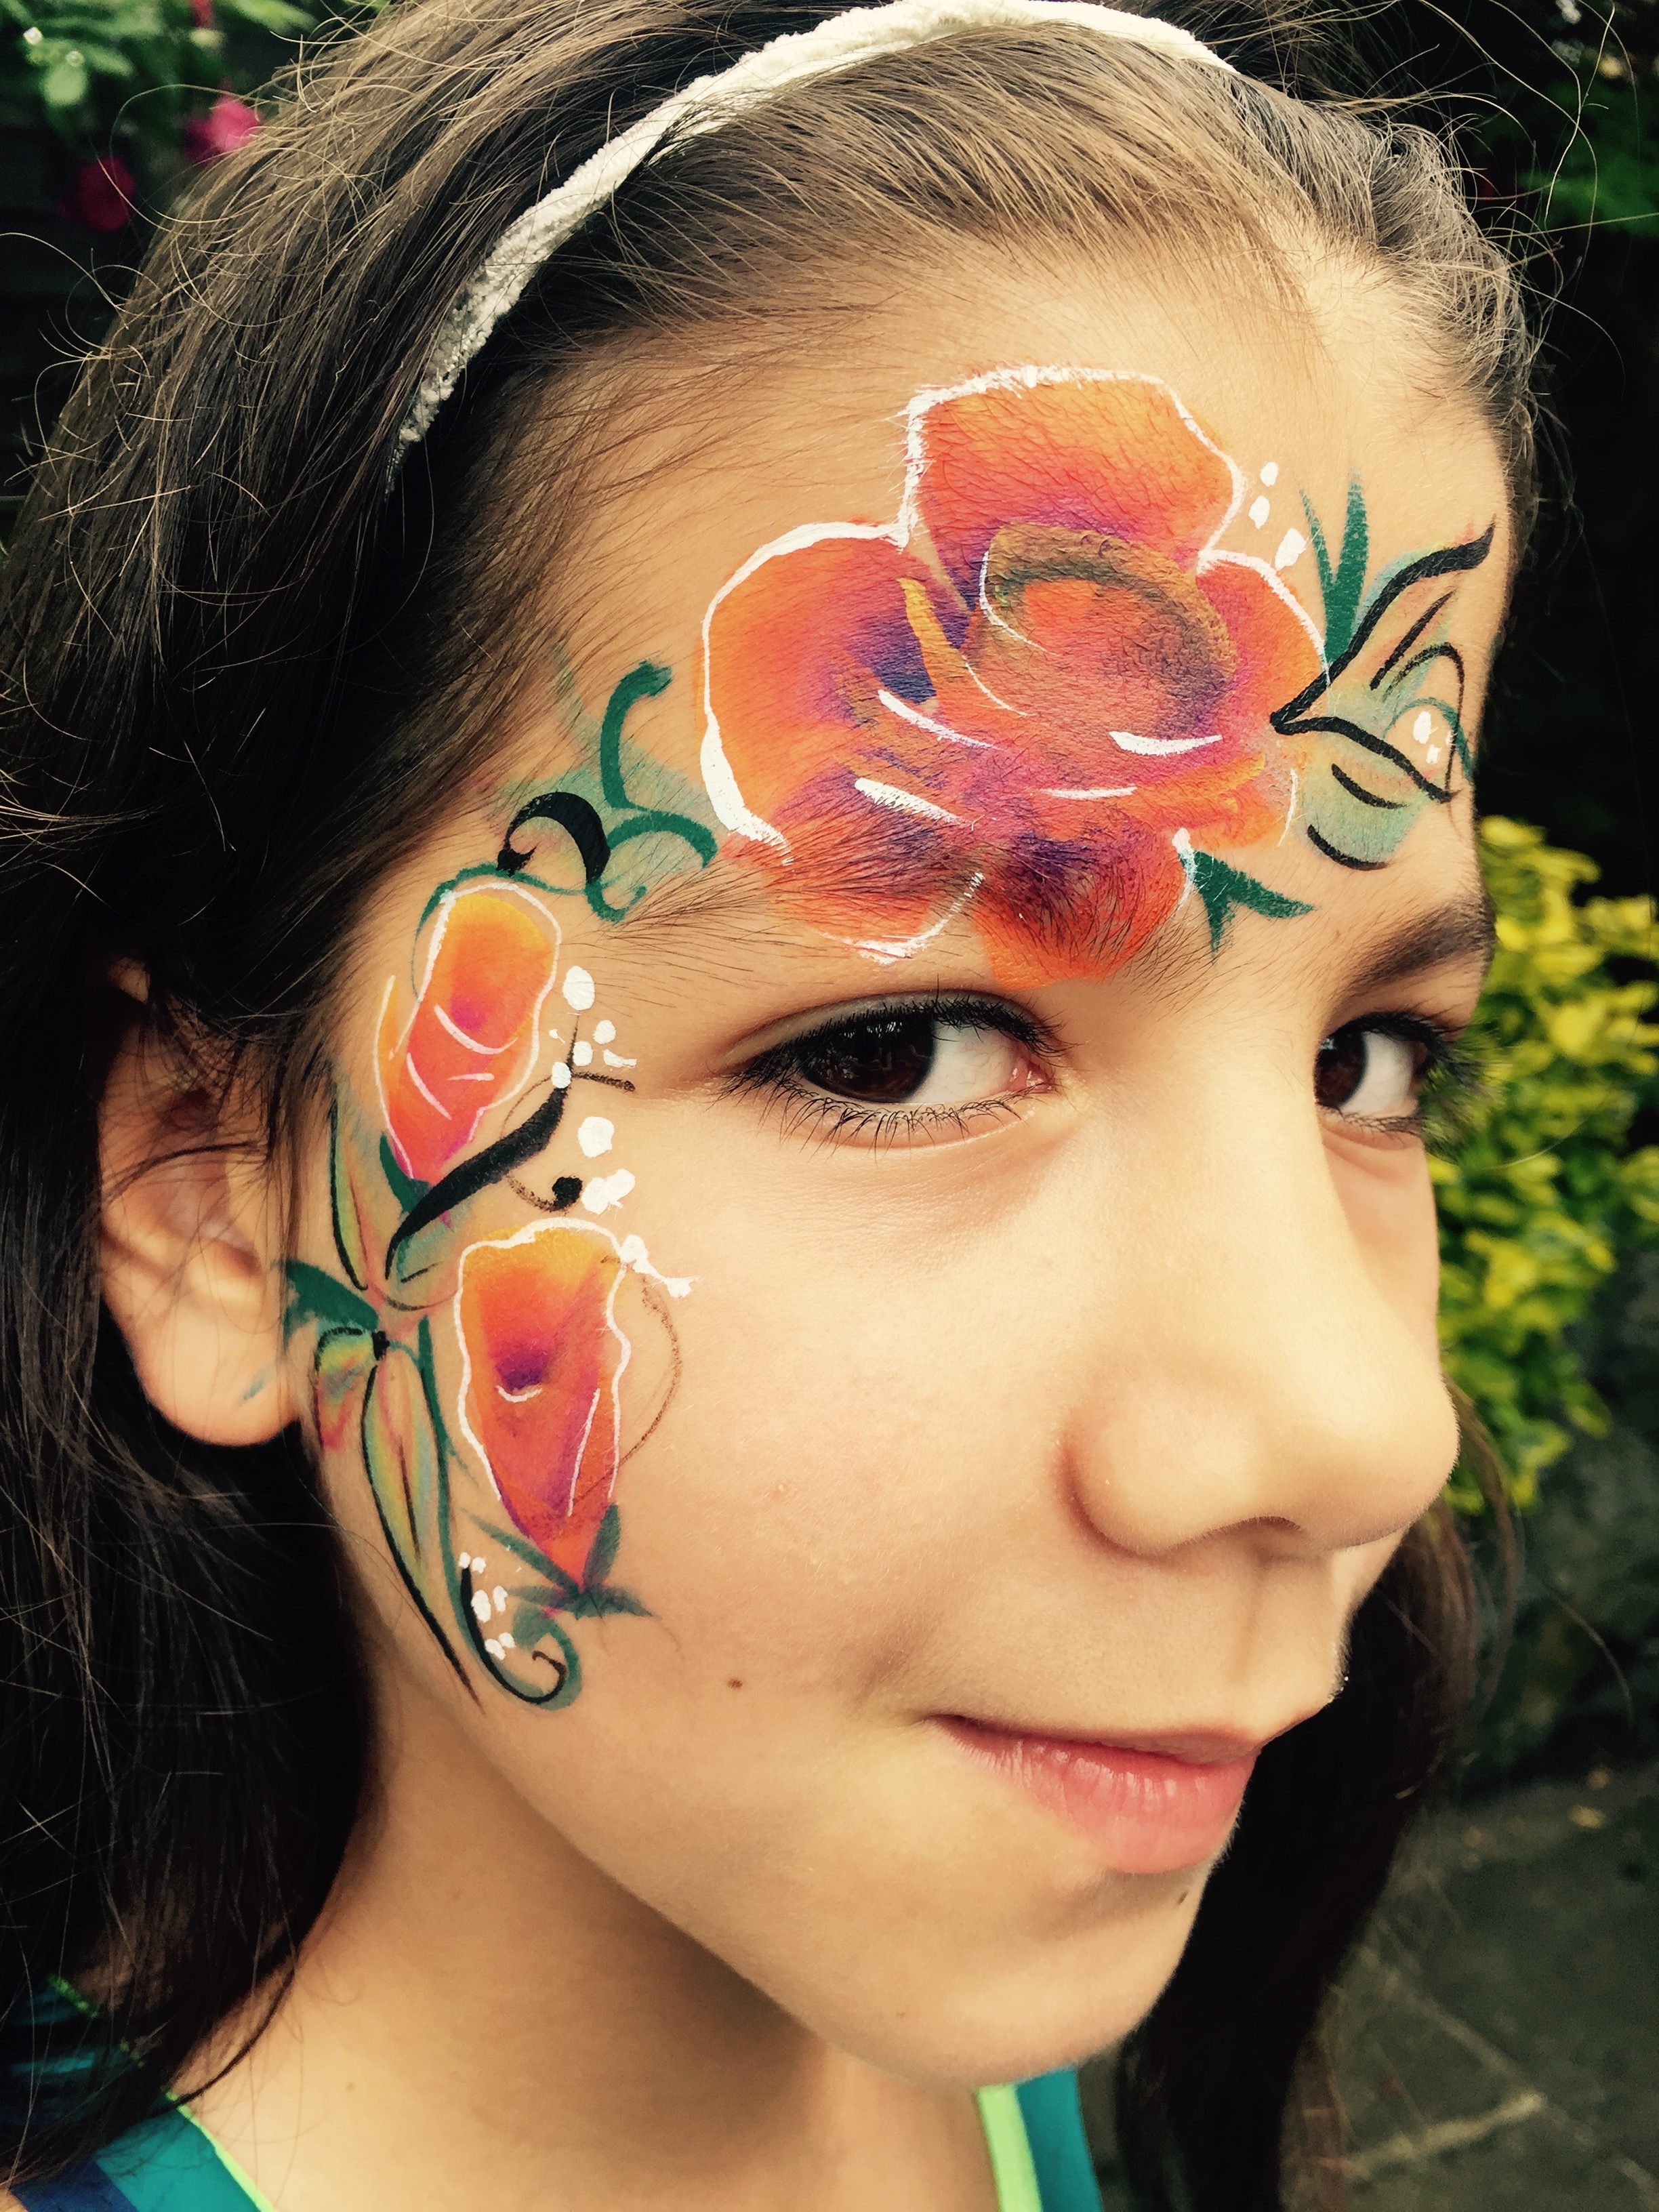 Beanys-facepainting-tropicalroses